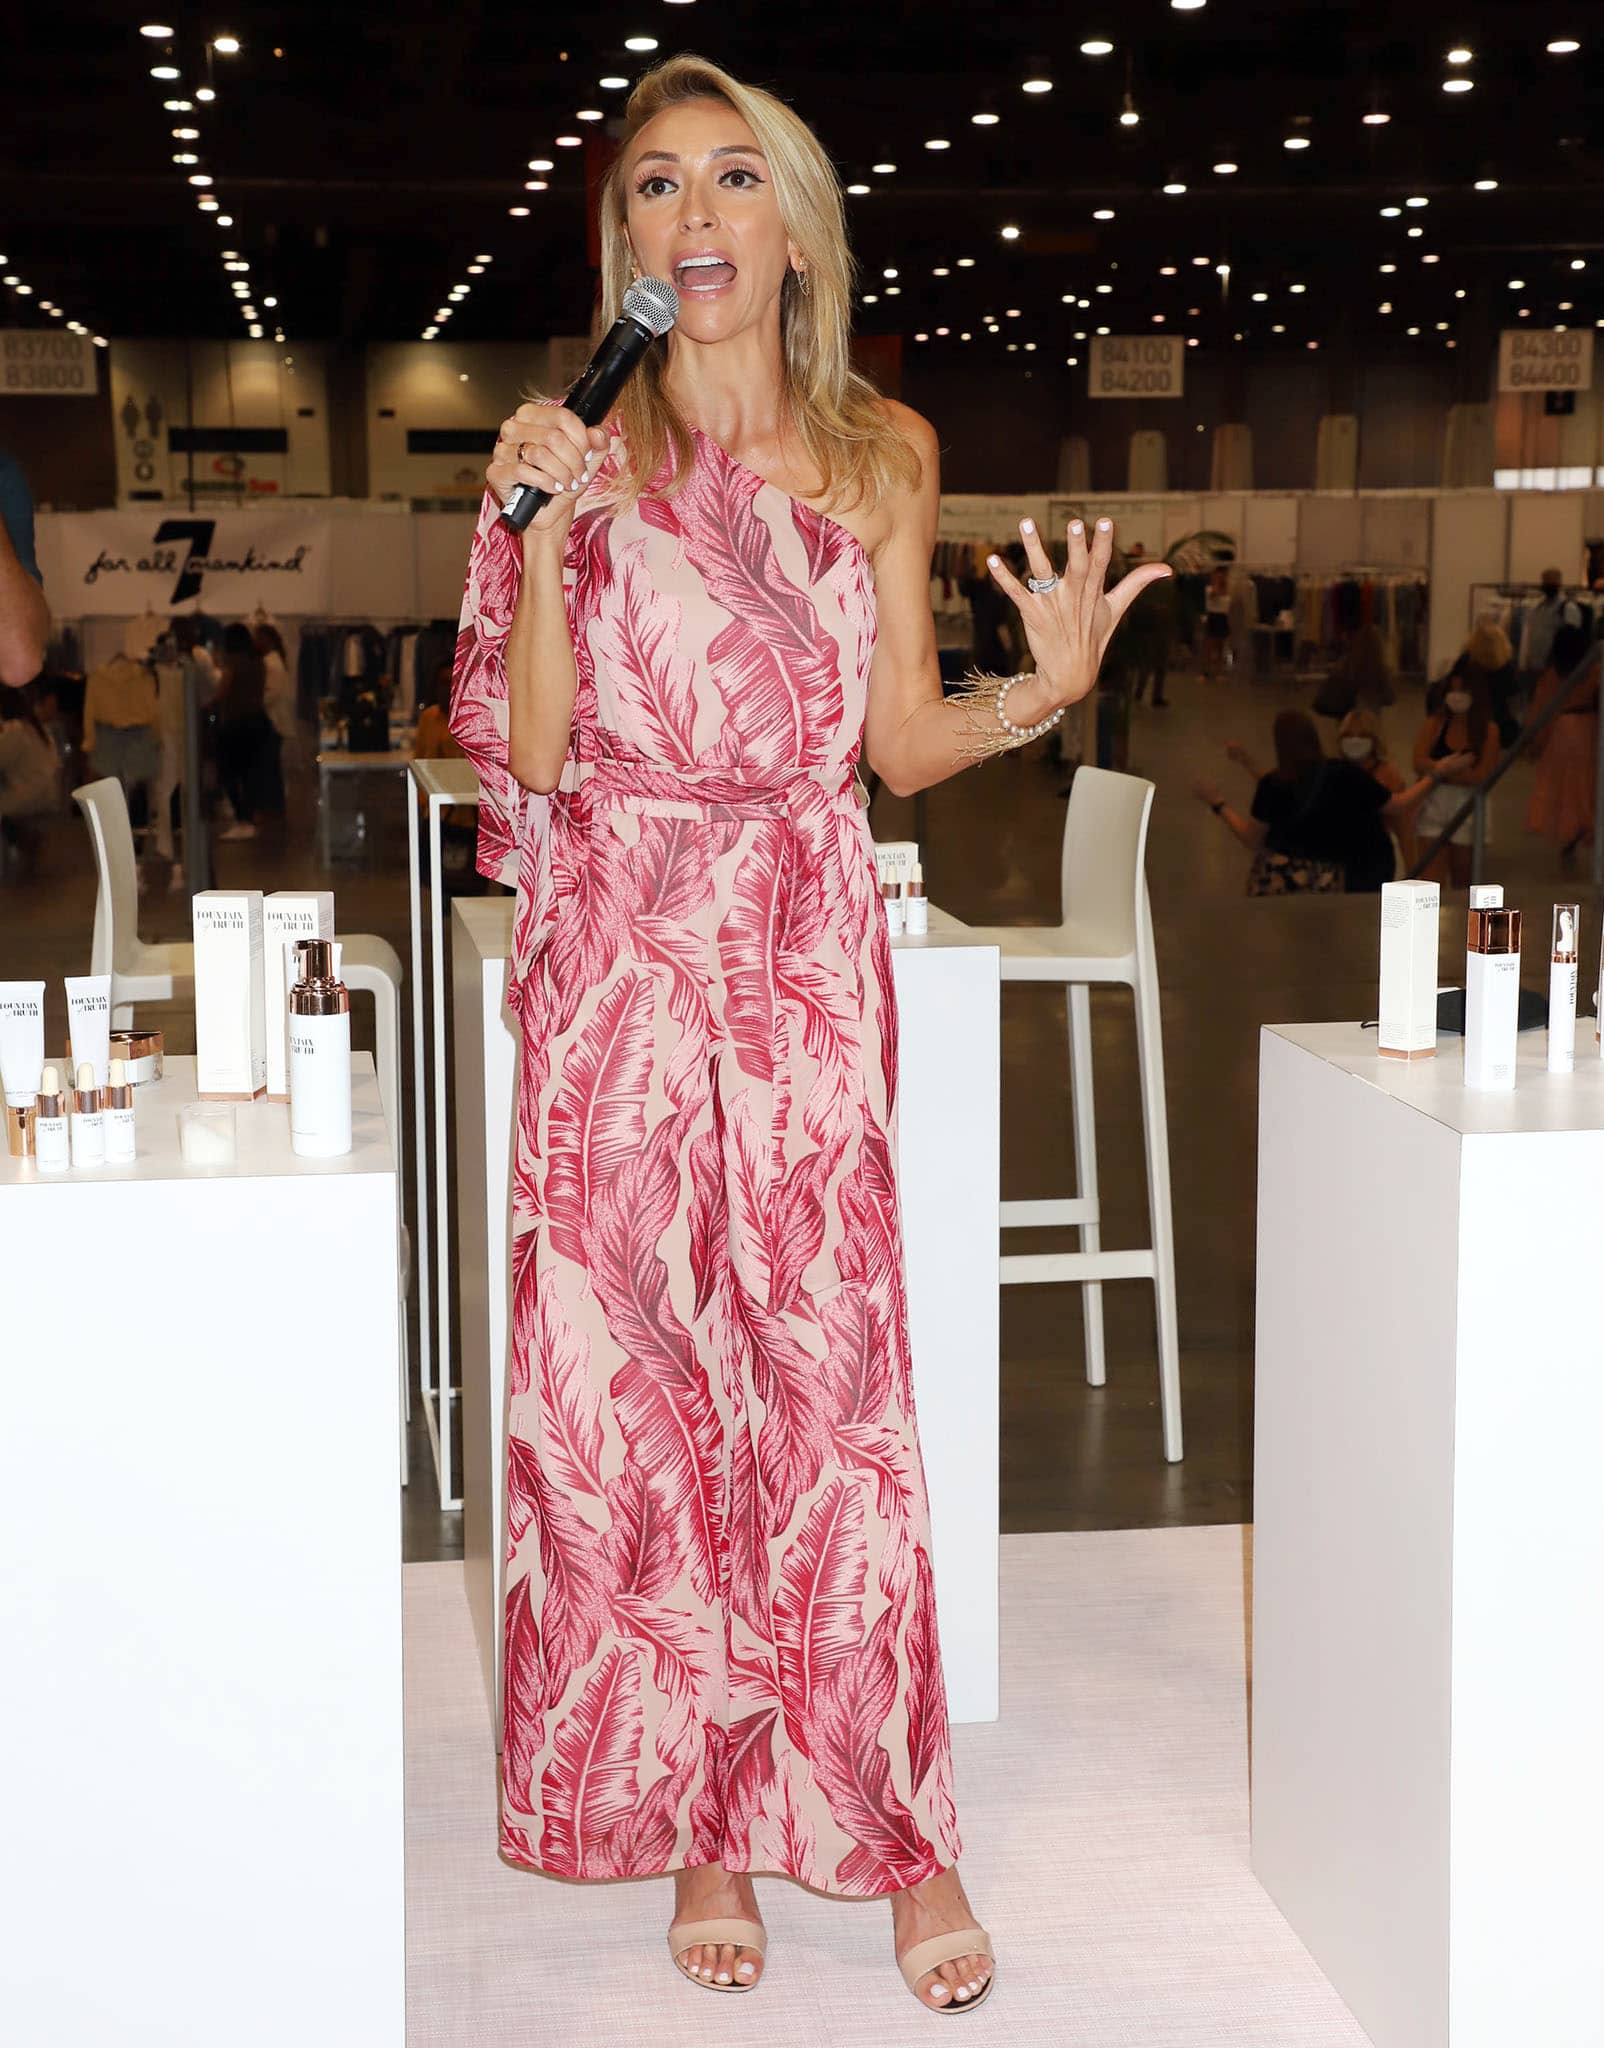 Giuliana Rancic wears a one-shoulder pink jumpsuit from her G by Giuliana clothing label